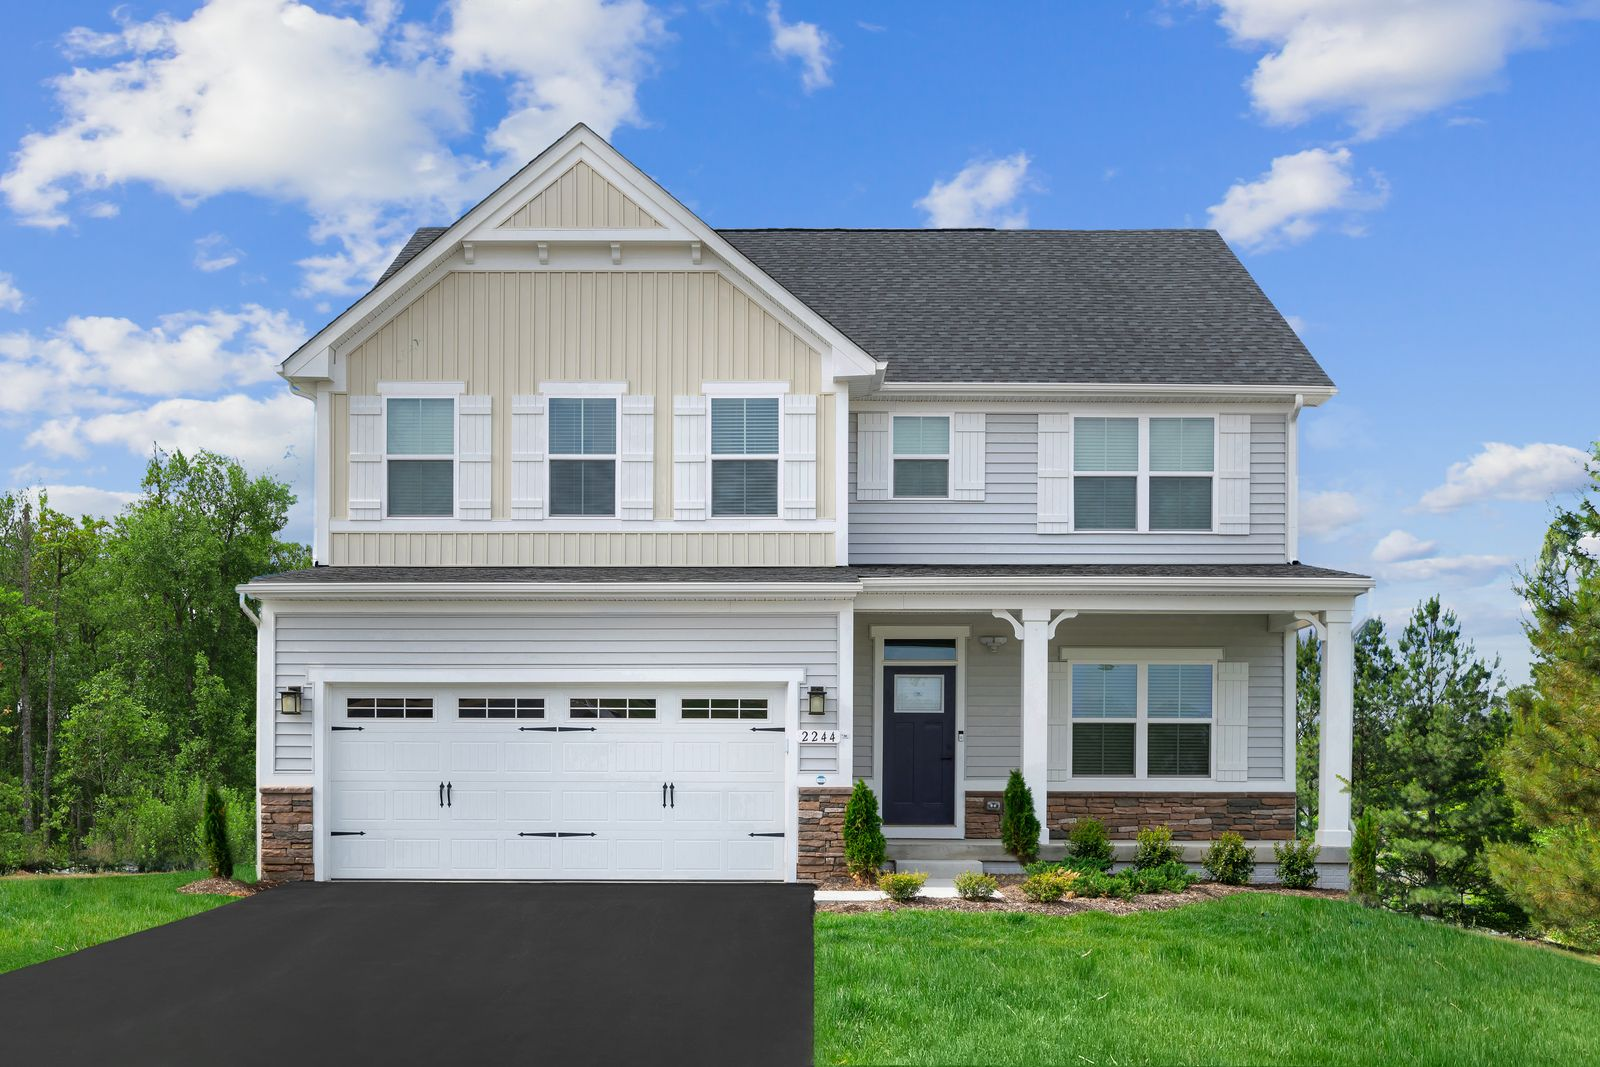 LEE'S PARKE - single-family homes from the upper $400s:Brand new homes in an established community with resort-style amenities and convenient access to shopping, dining, commuter routes and more!Schedule your visit today.